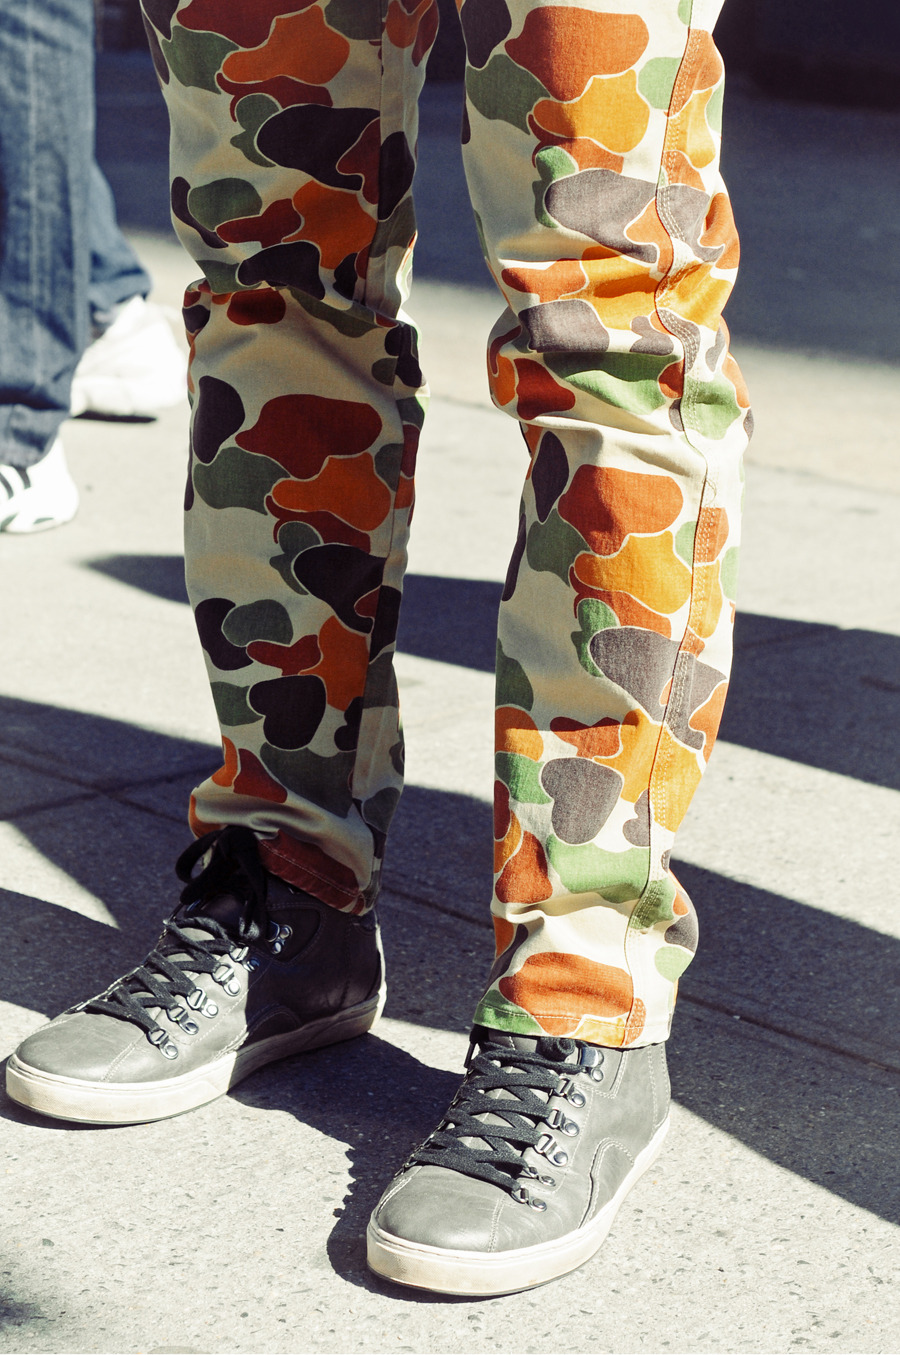 Camo pants at The Meatpacking District.